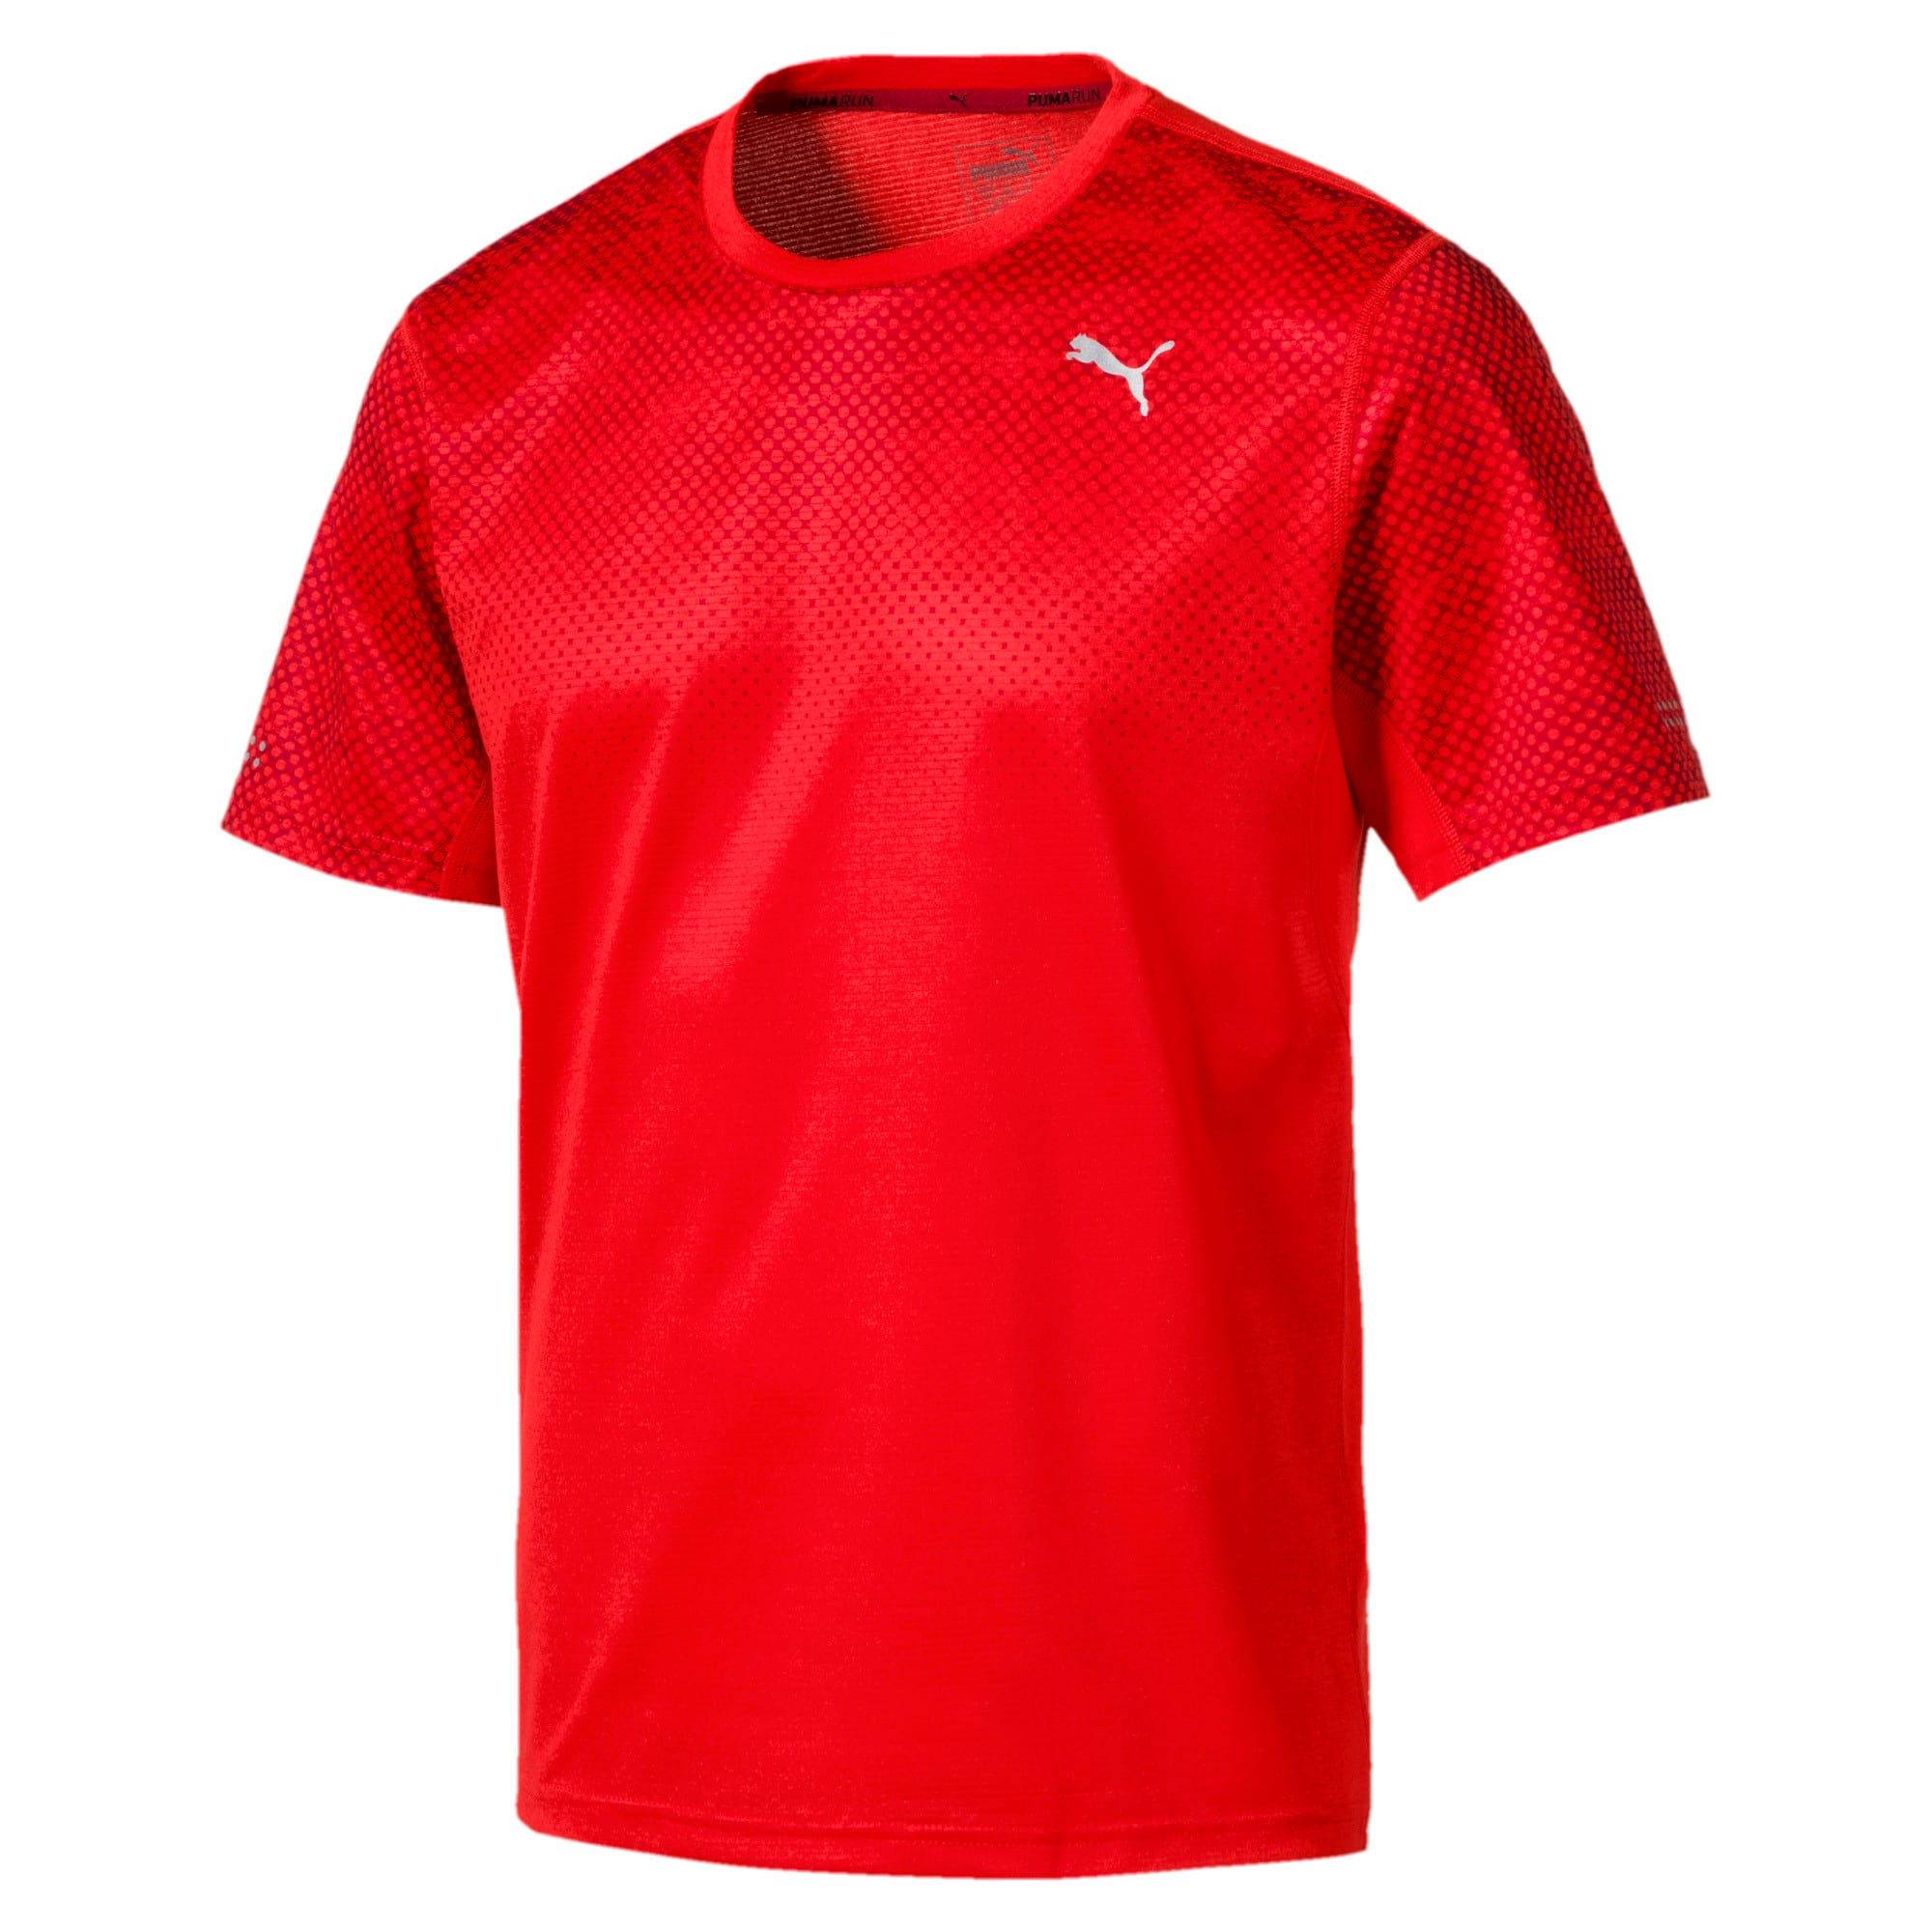 Thumbnail 3 of Graphic Short Sleeve Men's Running T-Shirt, Flame Scarlet, medium-IND